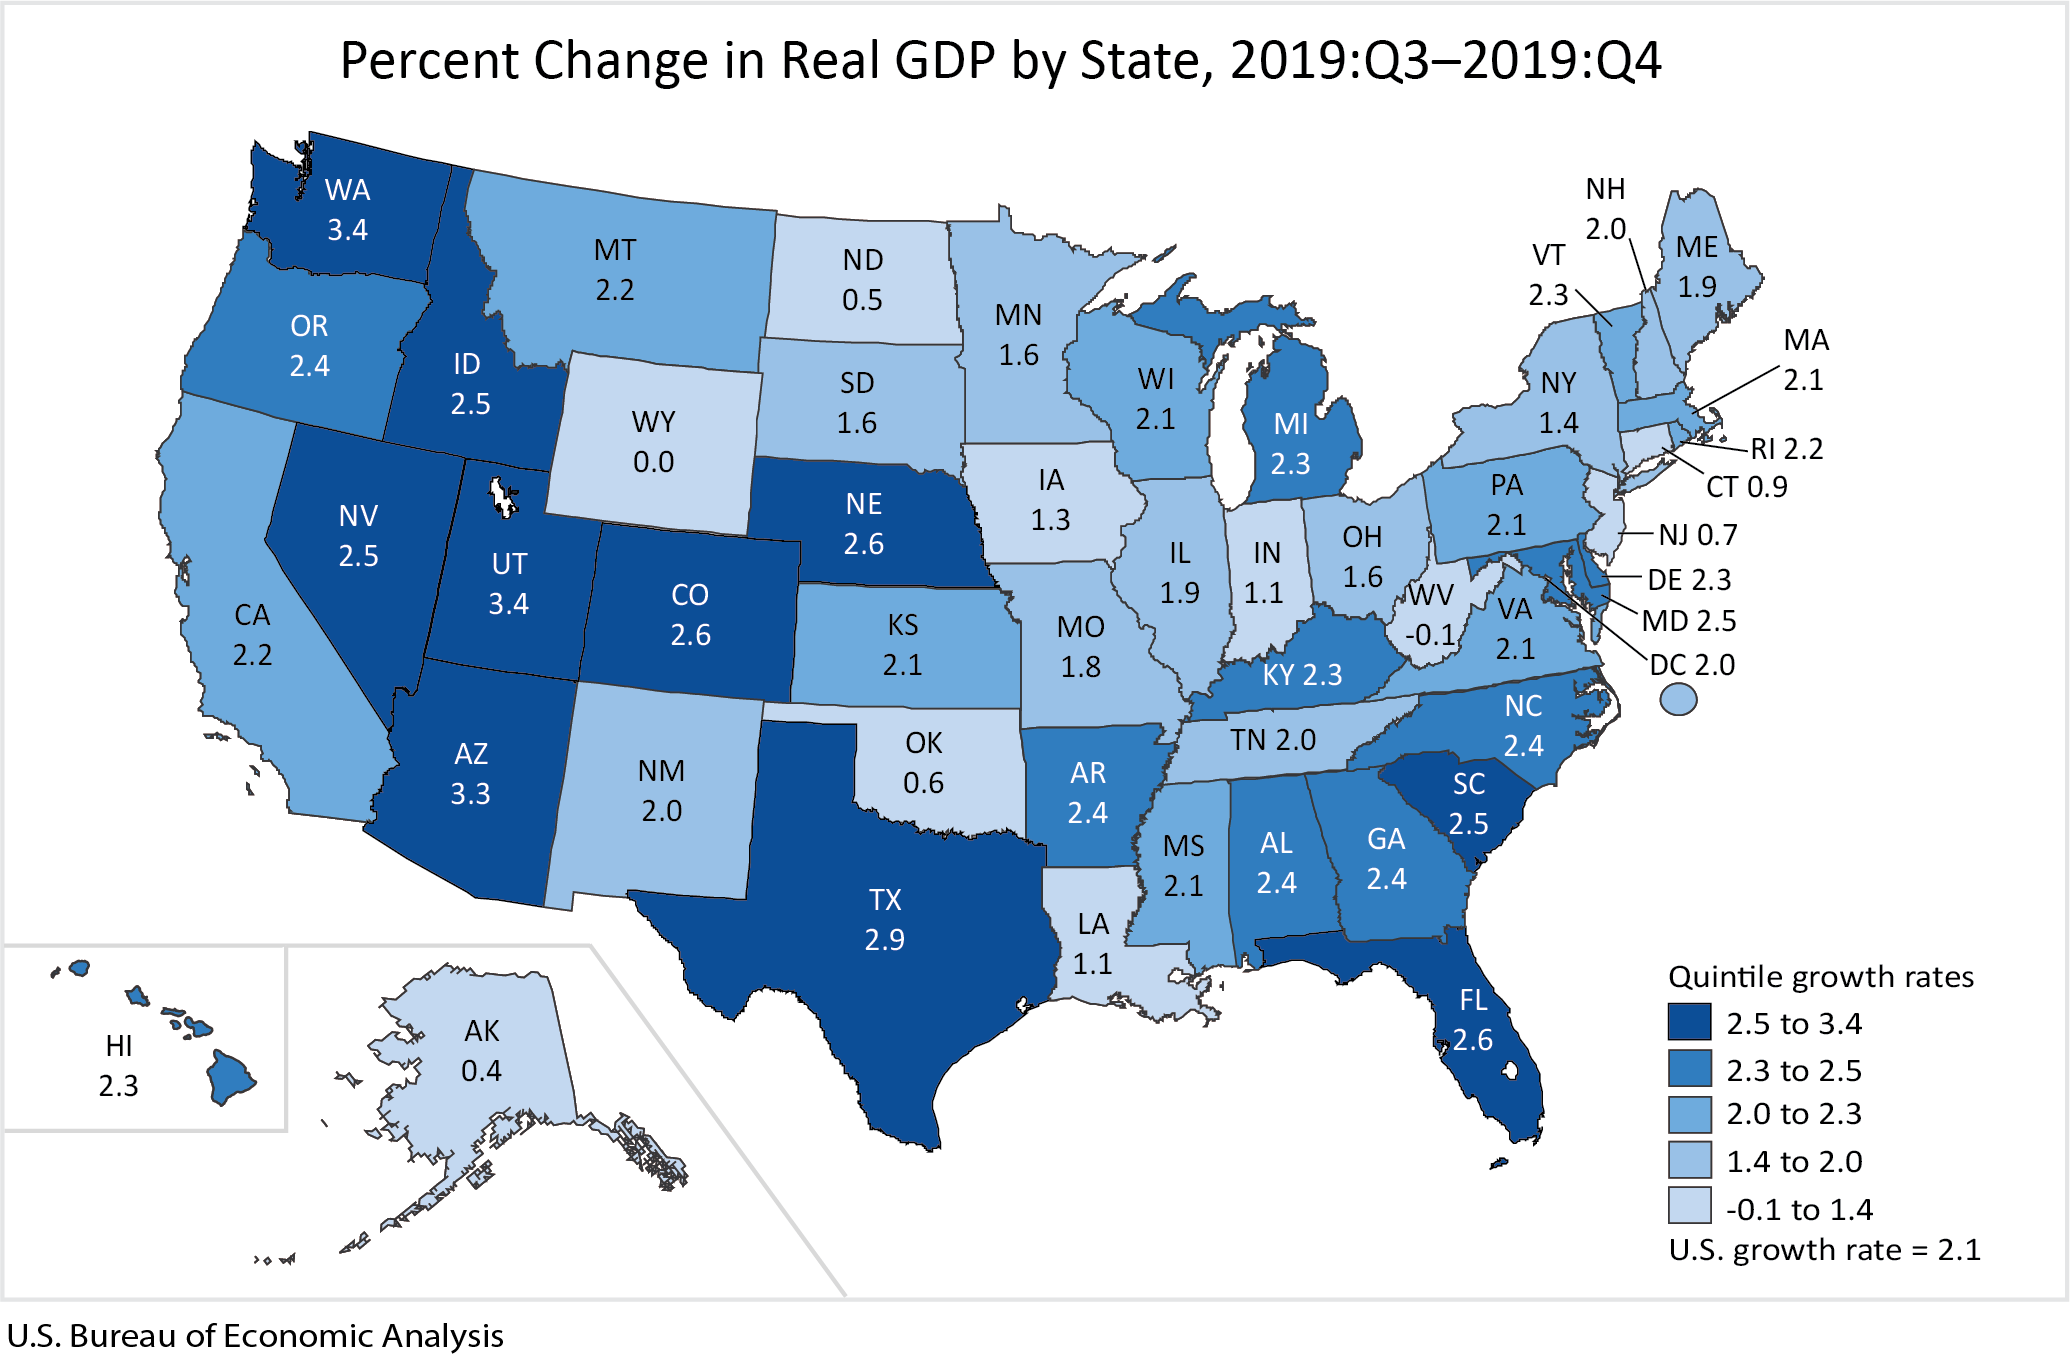 Percent Change in Real GDP by State, 2019:Q3-2019:Q4